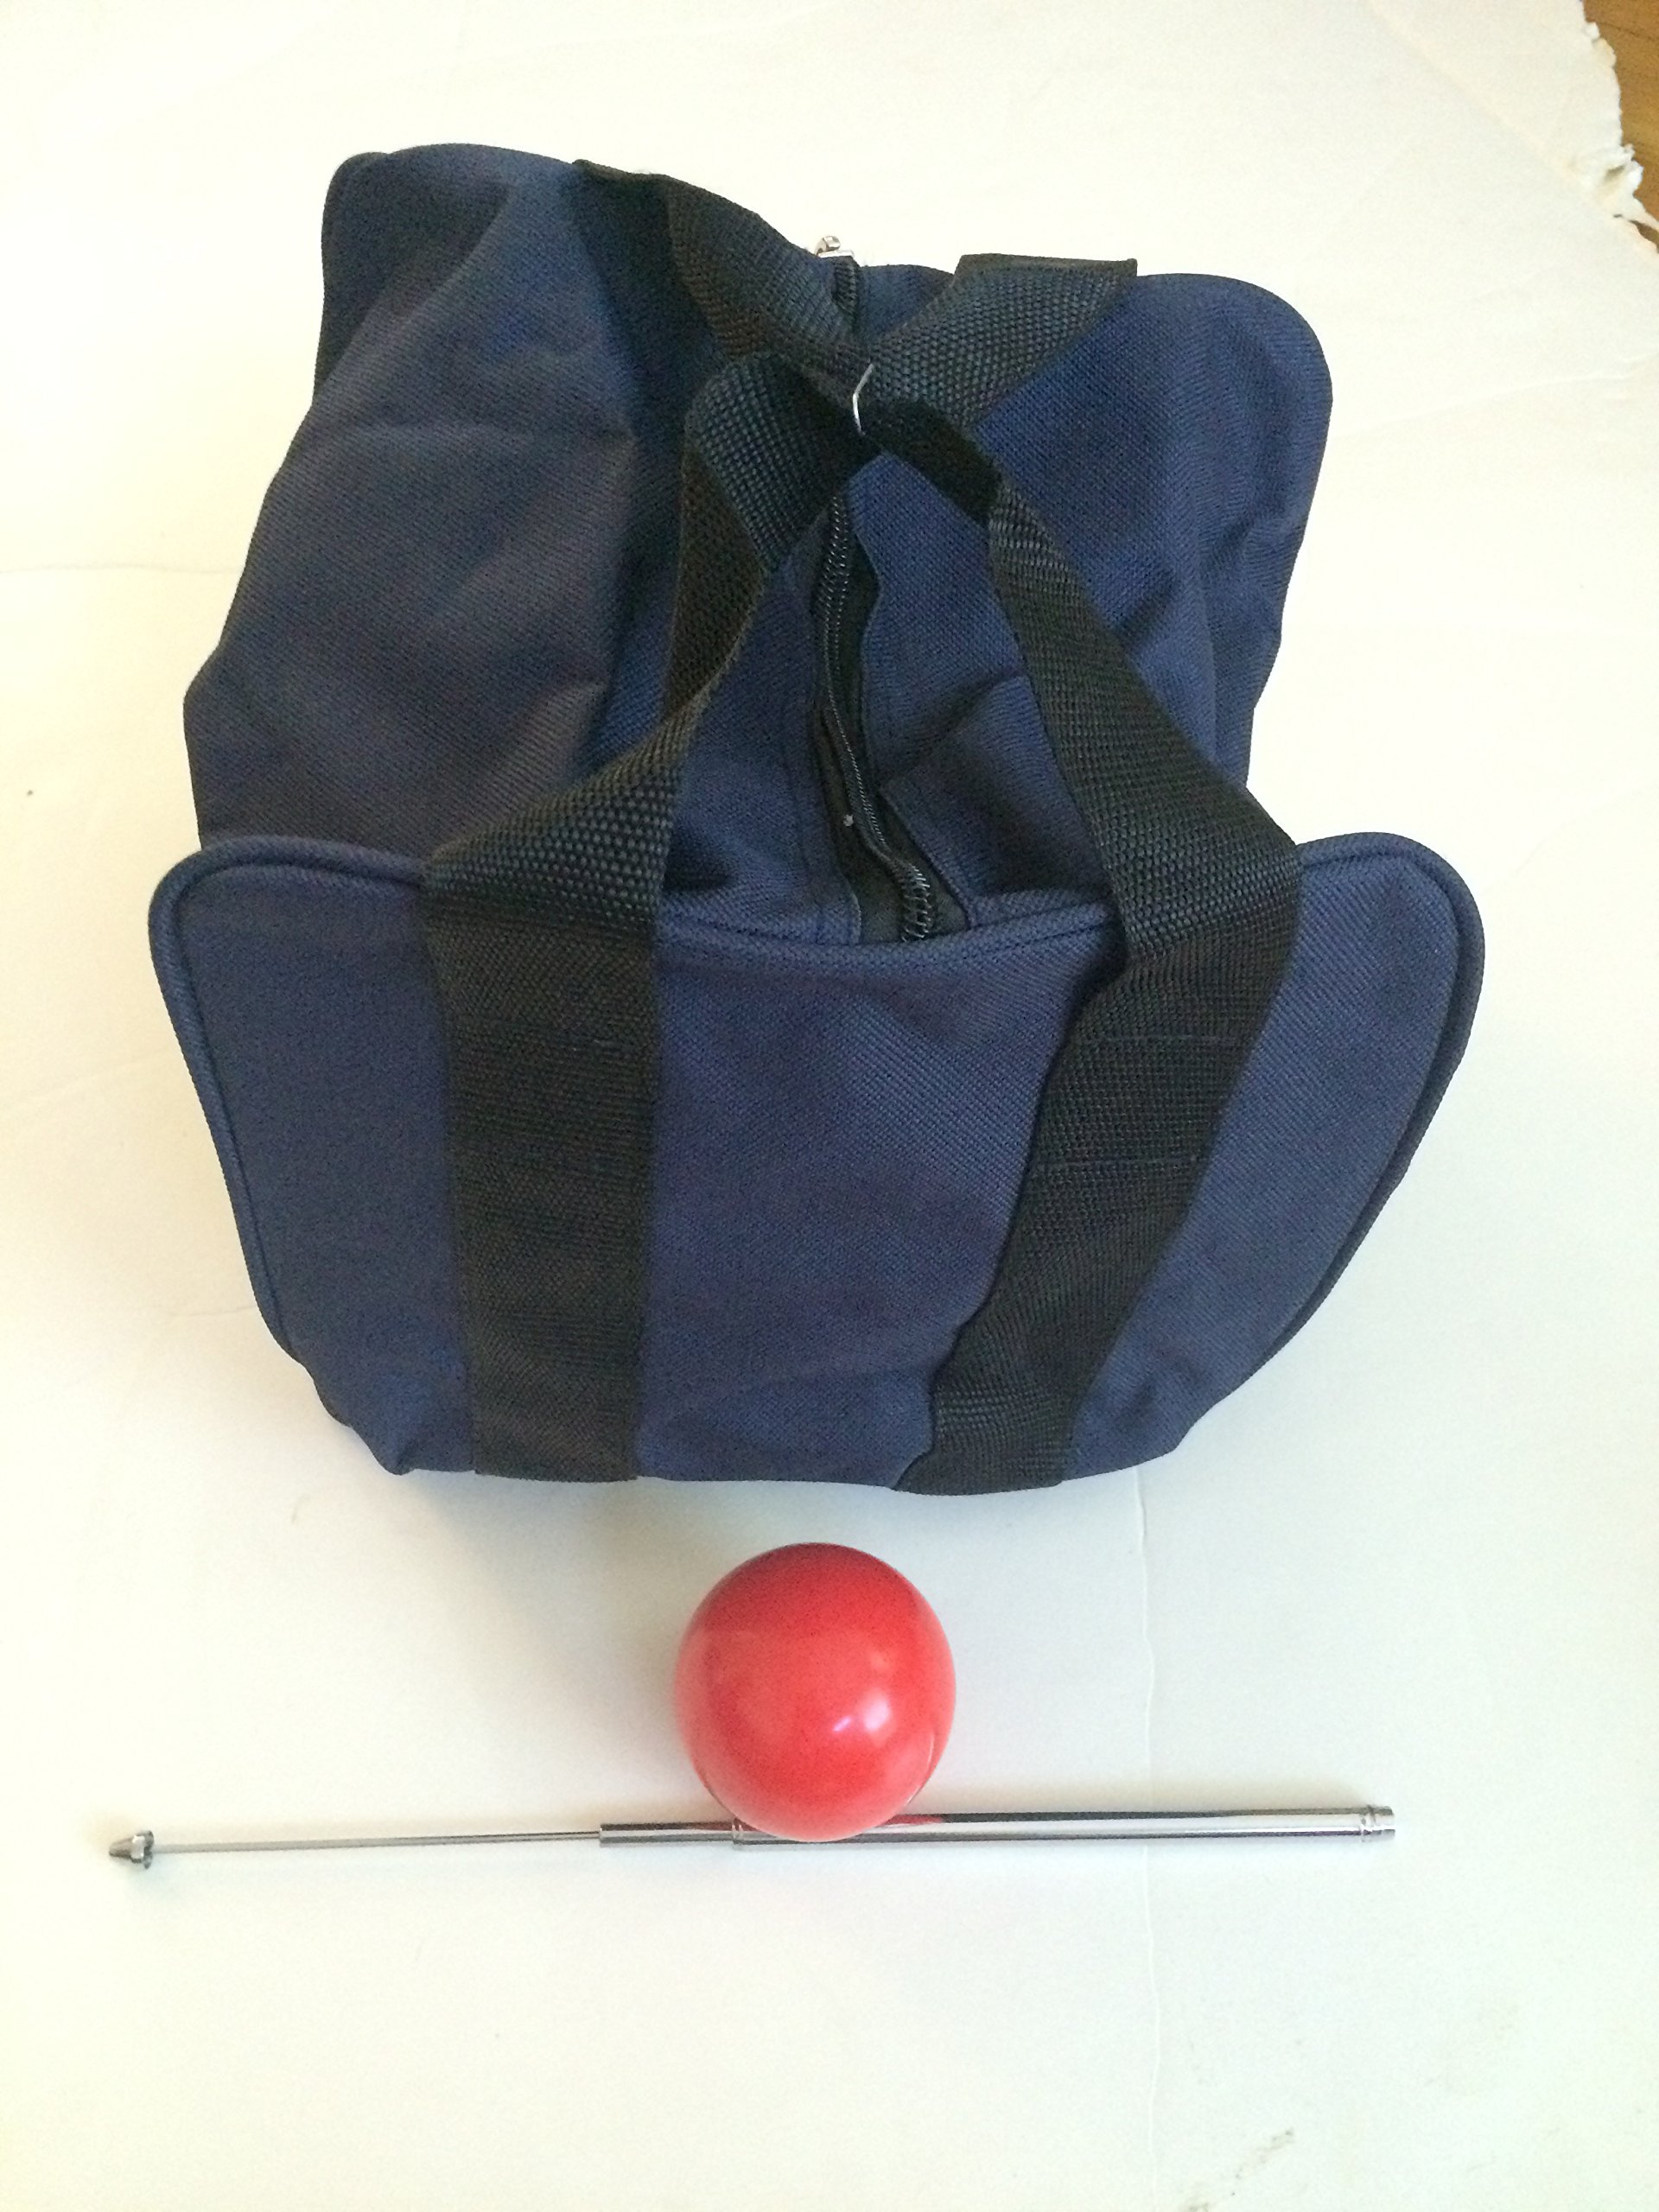 Unique Bocce Accessories Package - Extra Heavy Duty Nylon Bocce Bag (Blue with Black Handles), red pallina, Extendable Measuring Device